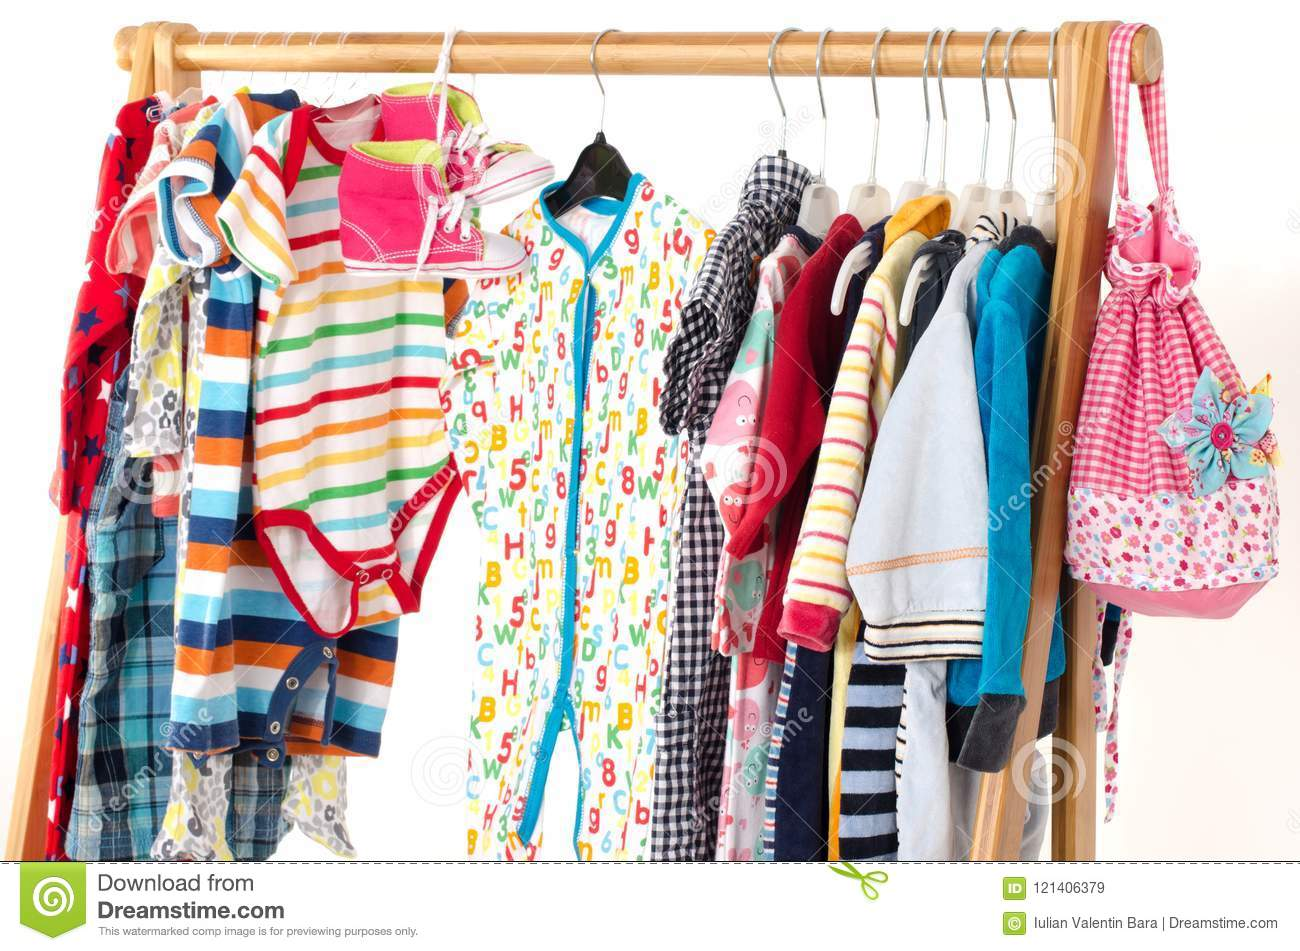 697602c11 Dressing Closet With Kids Clothes Arranged On Hangers. Stock Image ...